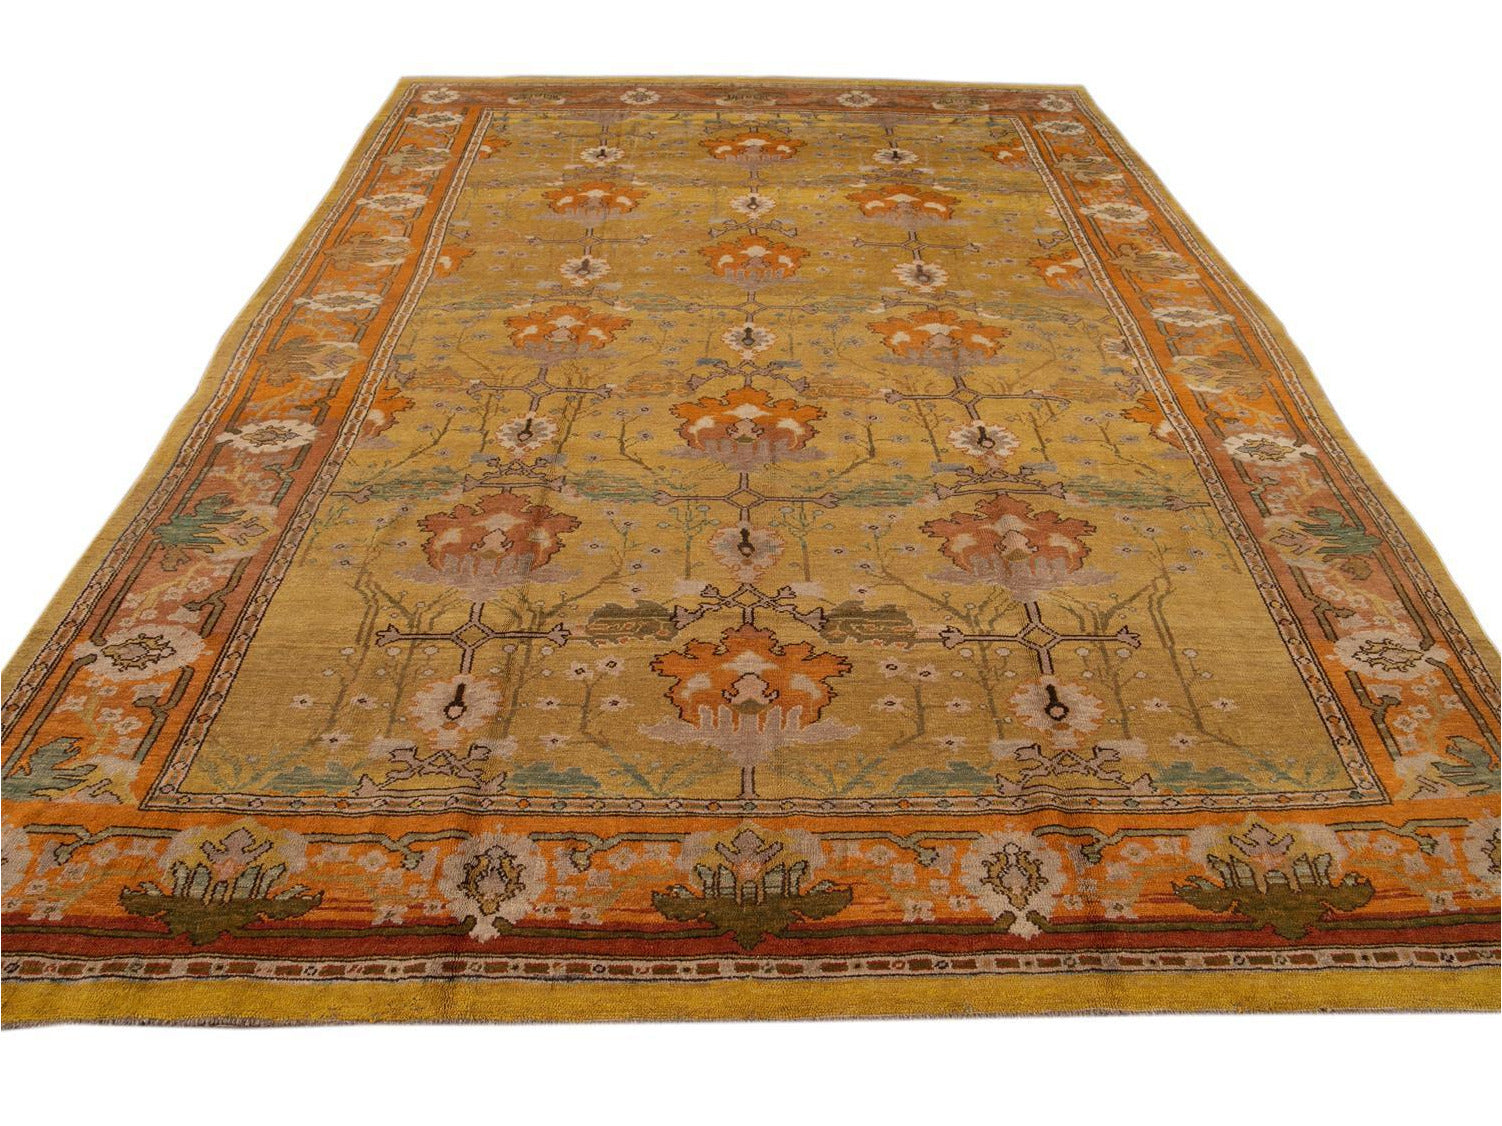 Vintage Donegal Arts & Crafts style Rug 10 X 13